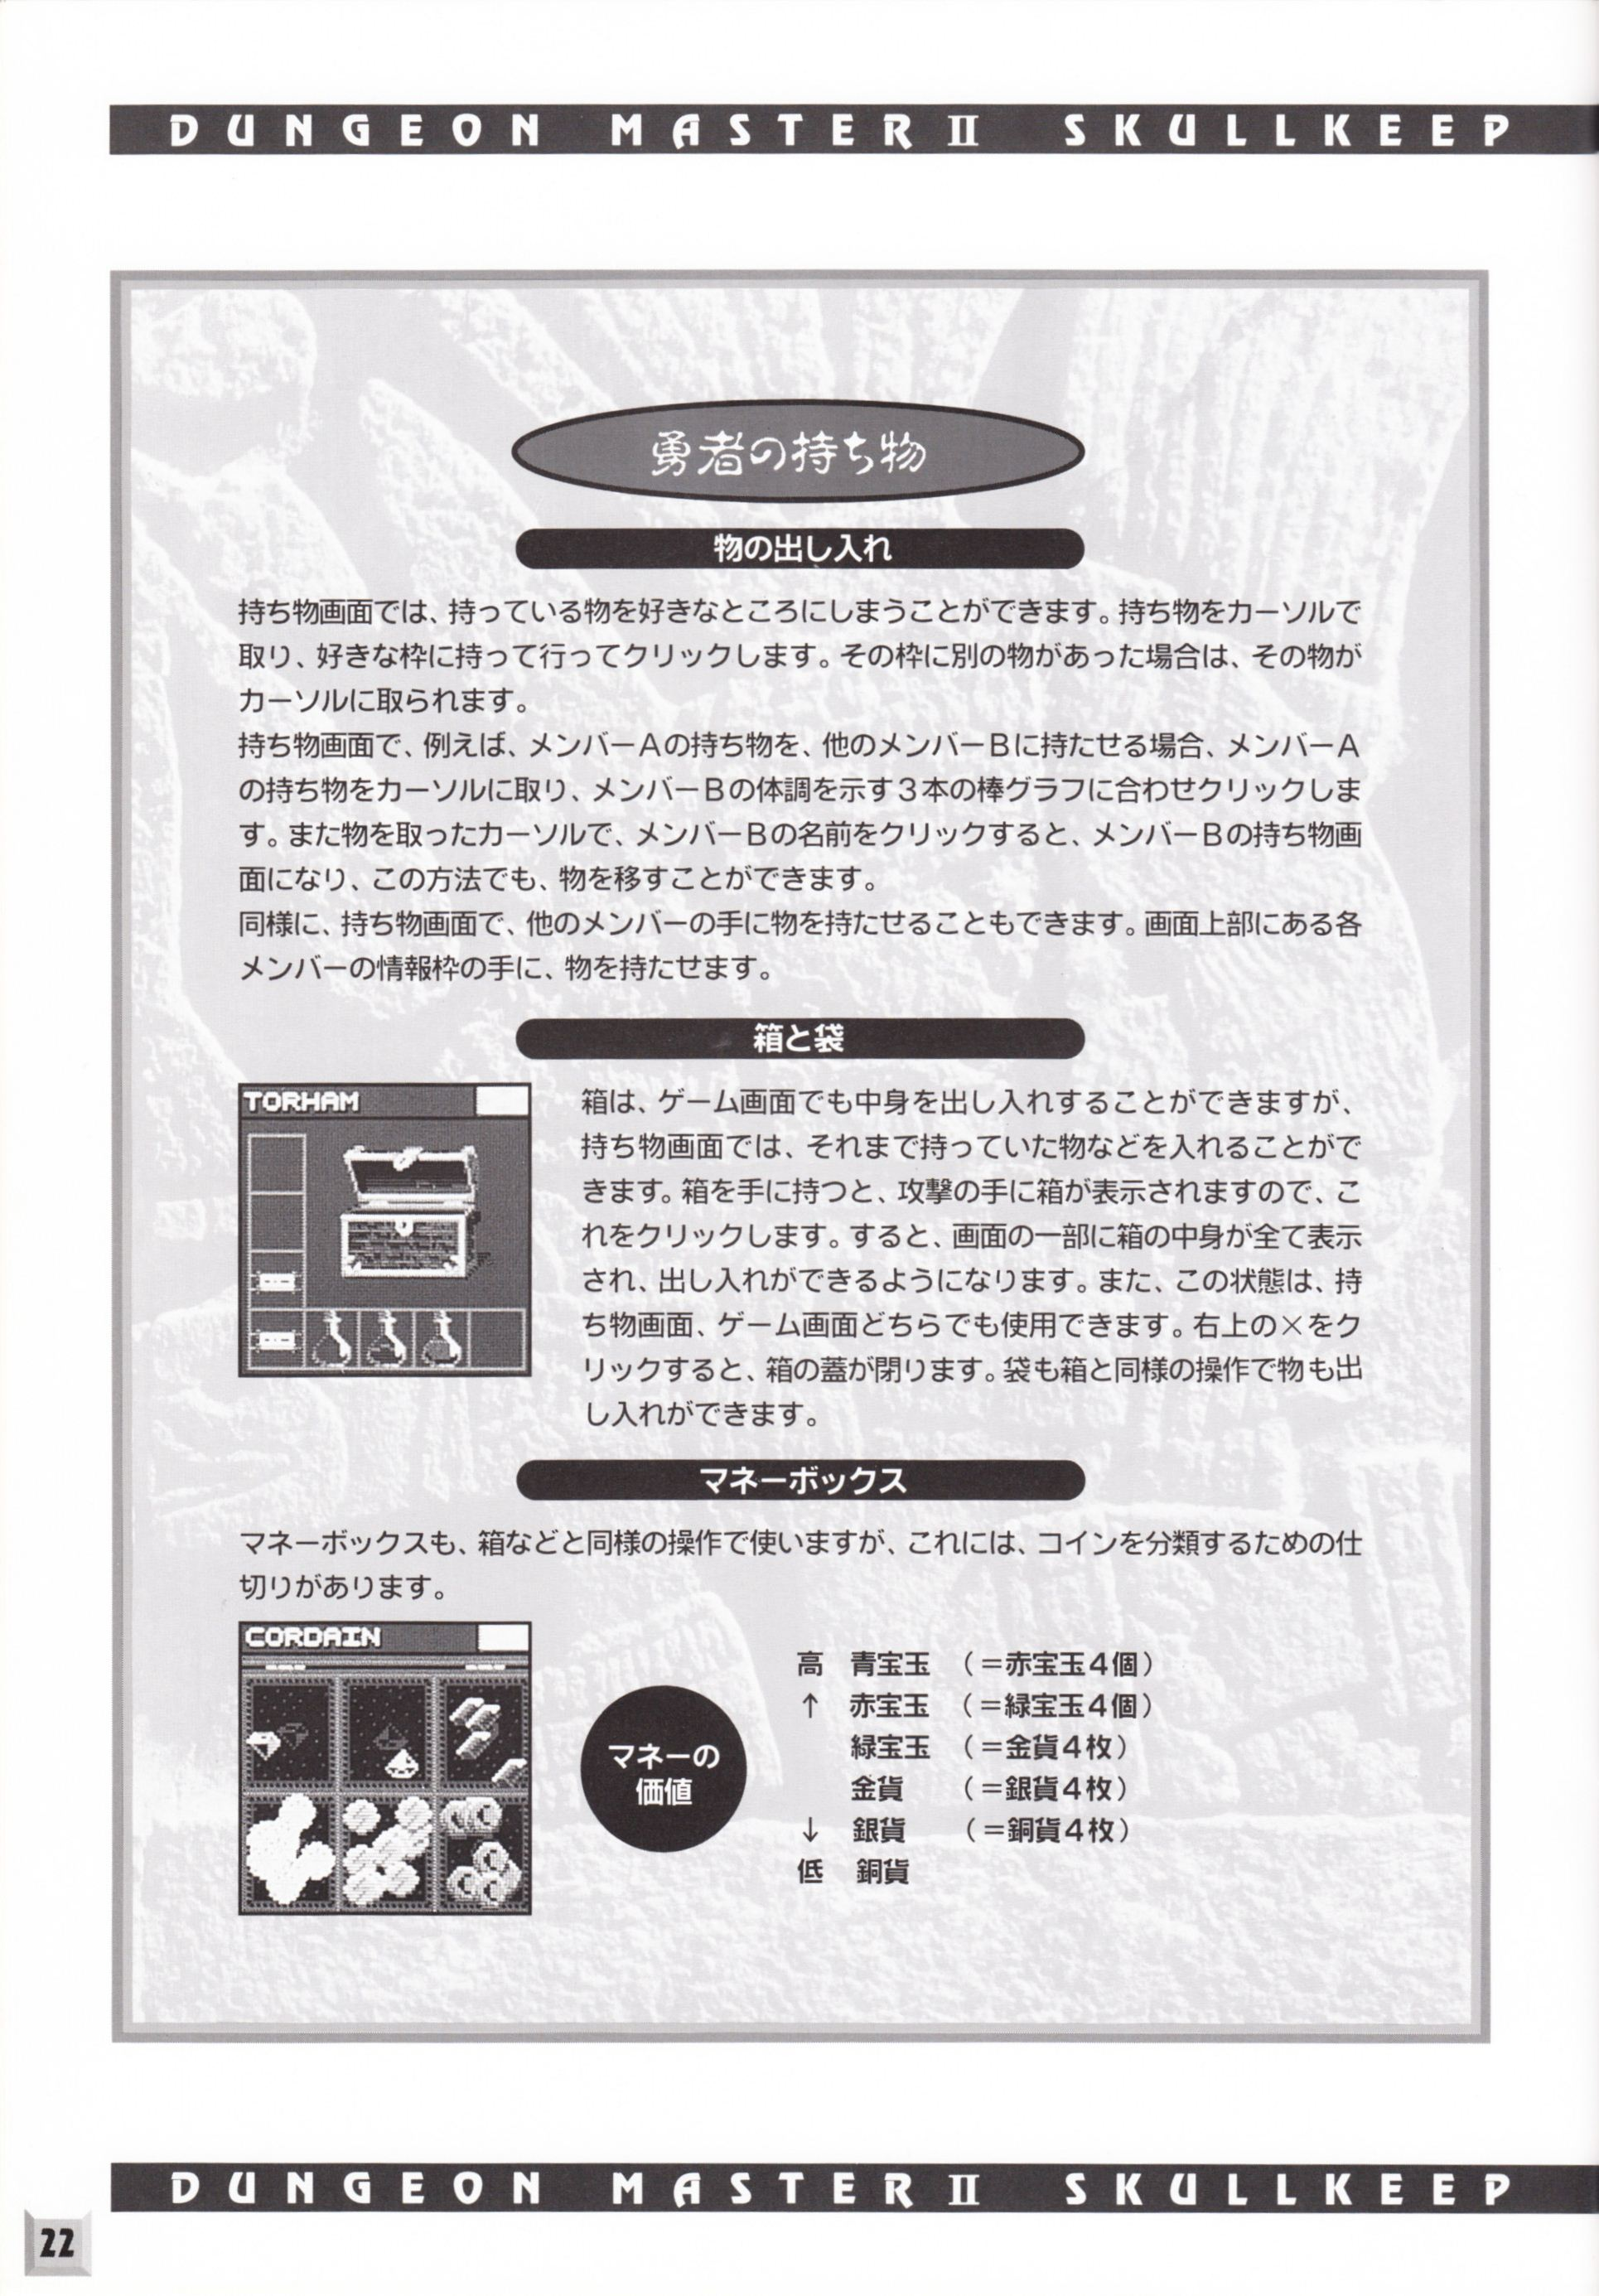 Game - Dungeon Master II - JP - PC-9801 - 3.5-inch - An Operation Manual - Page 024 - Scan